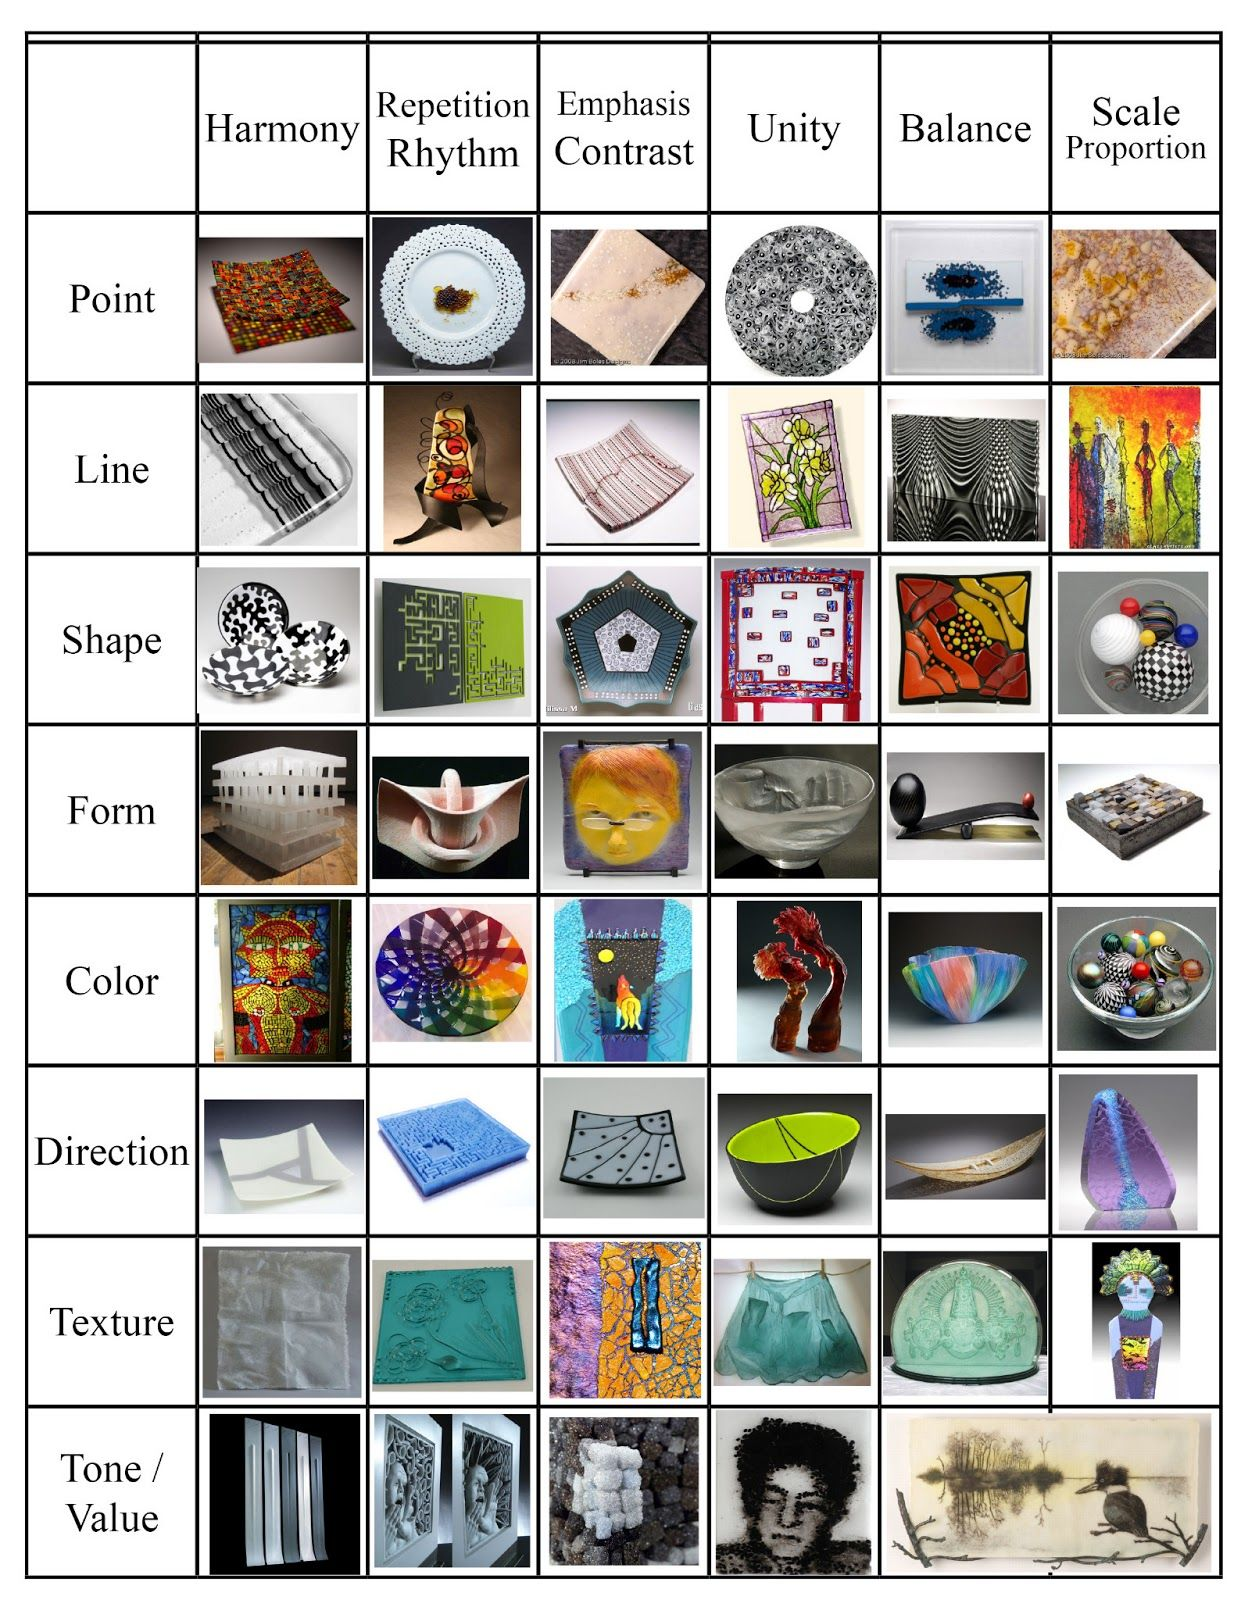 Jim Boles Designs Elements Amp Principles Of Design In Glass Art Image Making Series